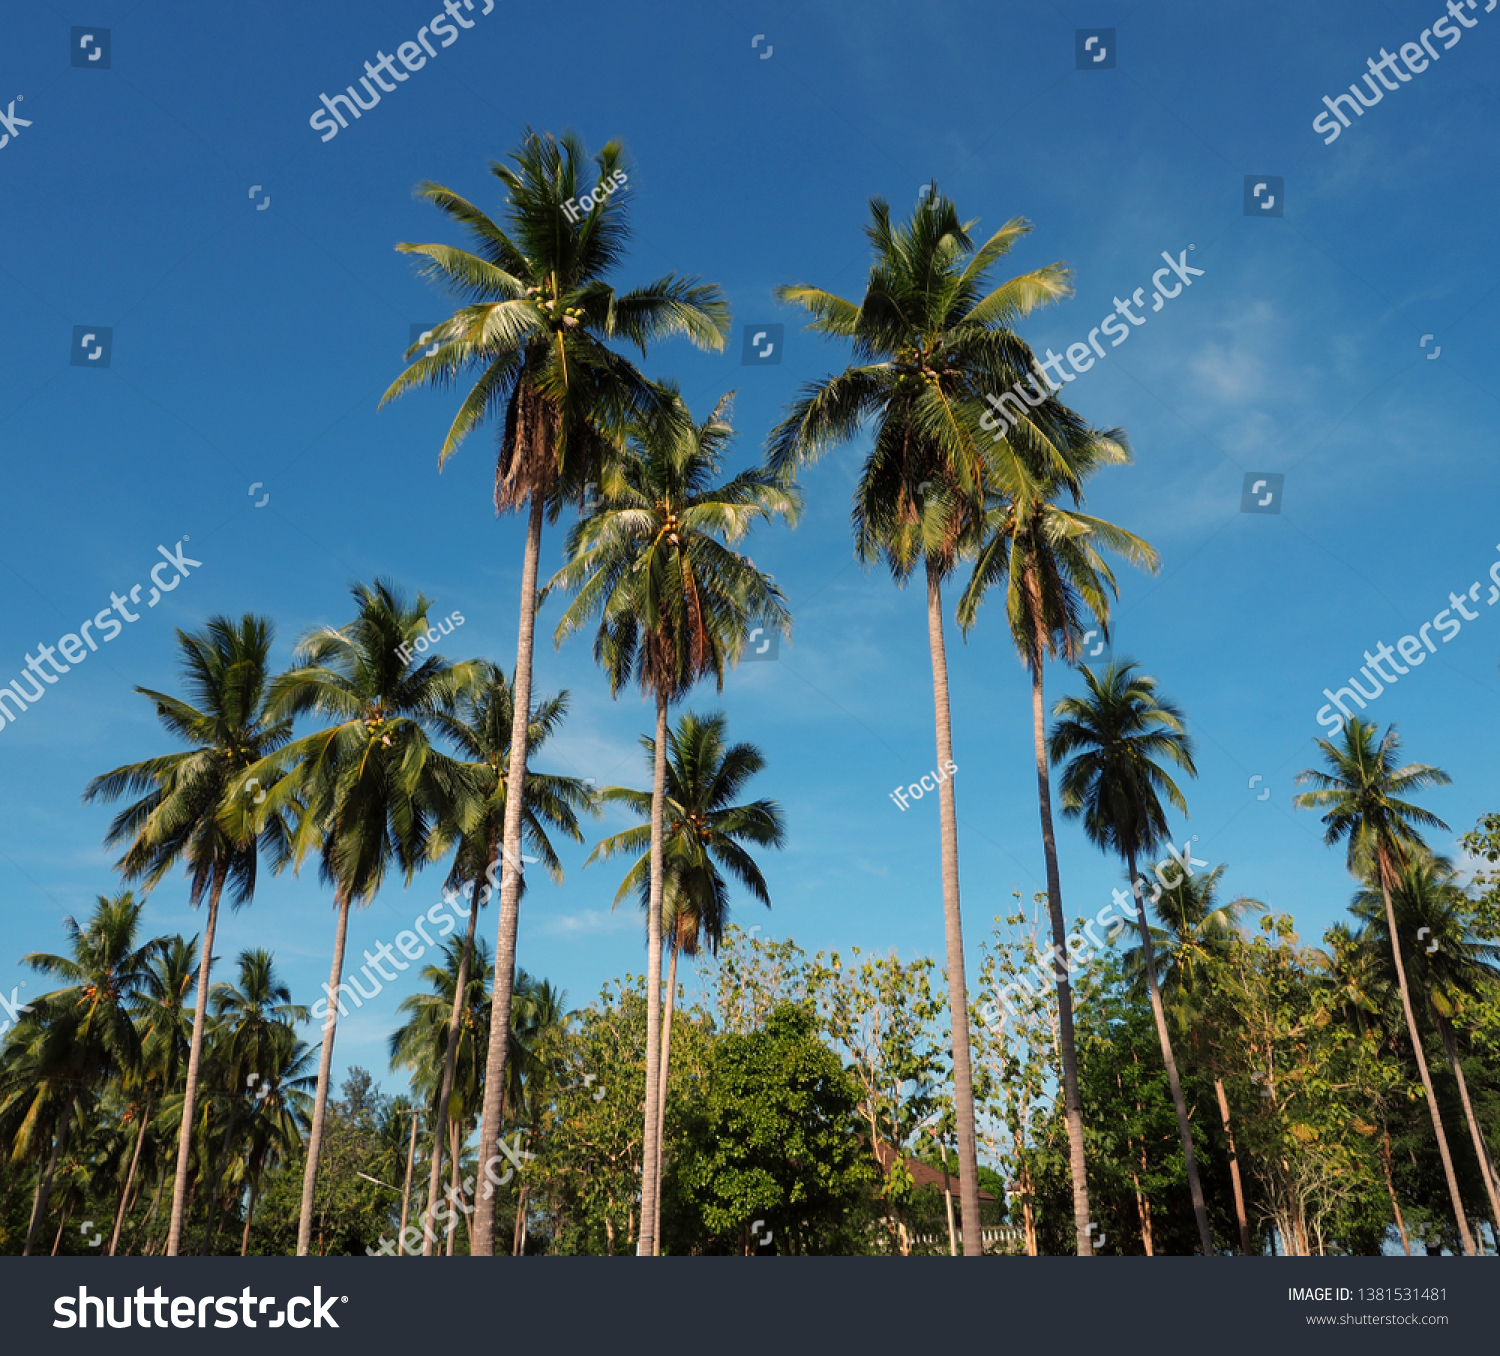 Up shot image of palm trees soaring into blue sky in Thailand.